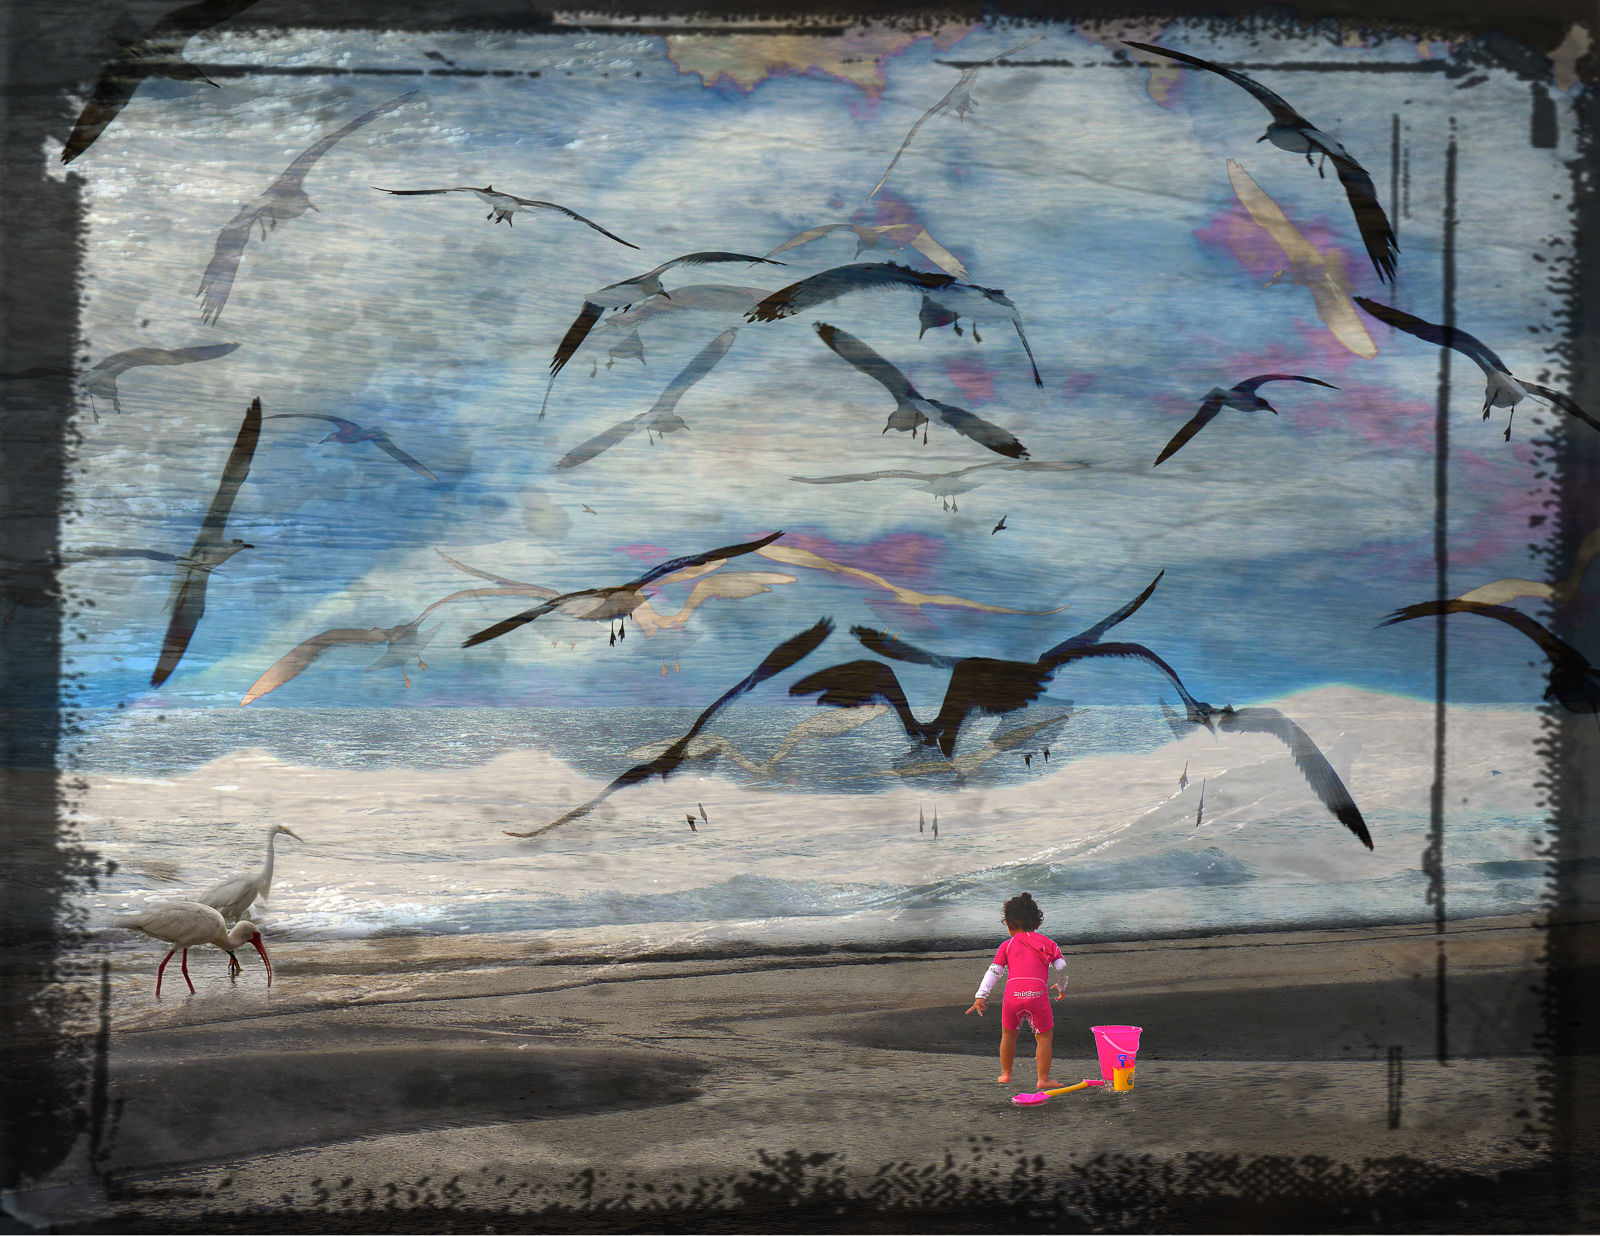 Child at Beach, work by R. Taylor Cullar (MG: June 2021)